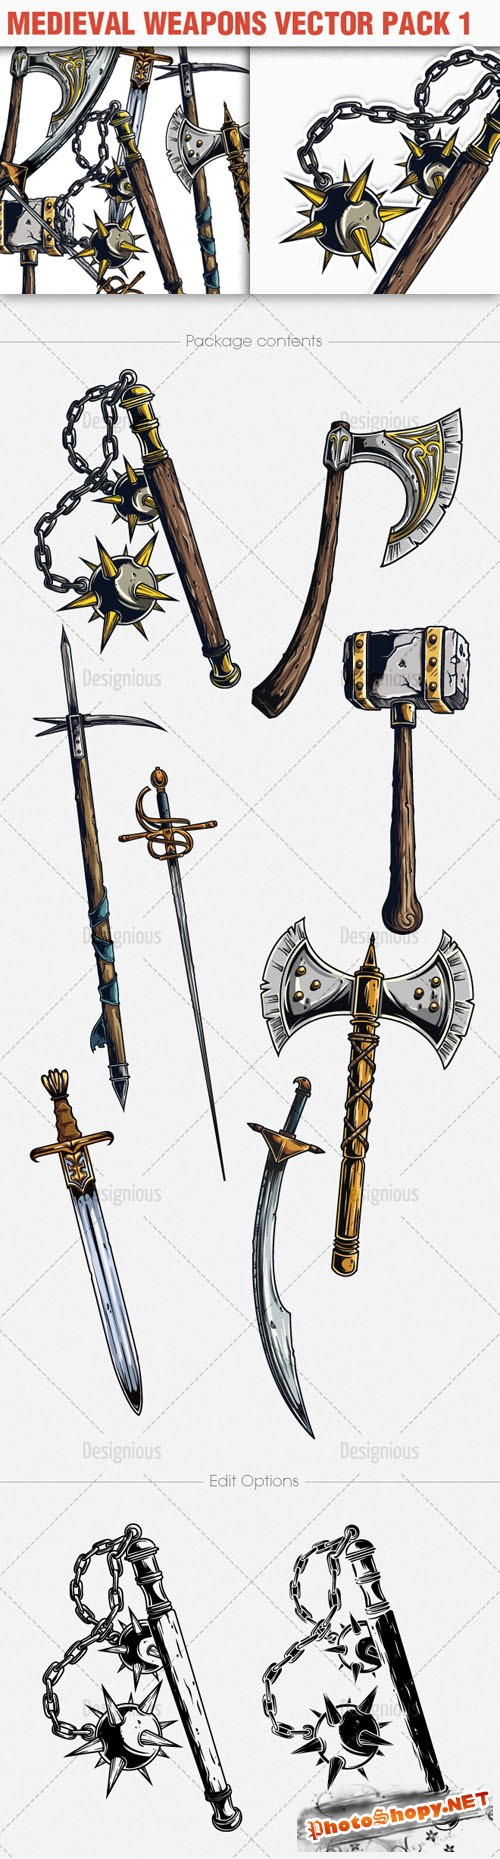 Medieval Weapons Photoshop Vector Pack 1